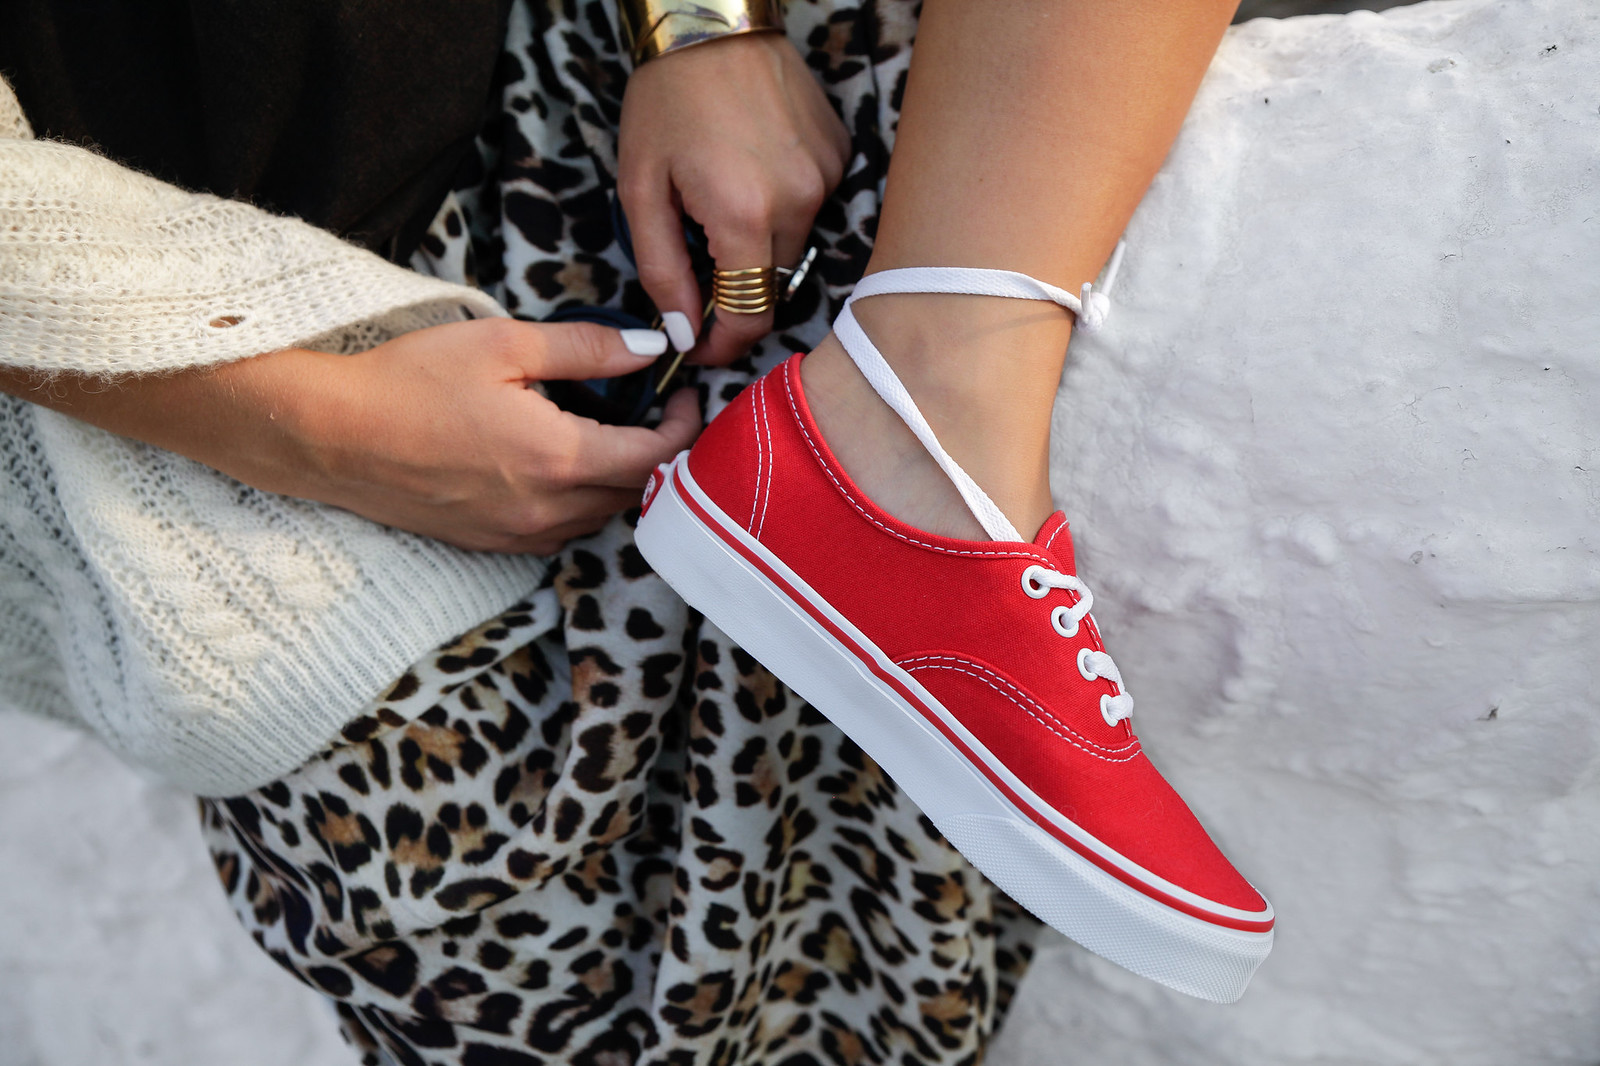 theguestgirl the guest girl laura santolaria influencer barcelona vans europe red sneackers shop online